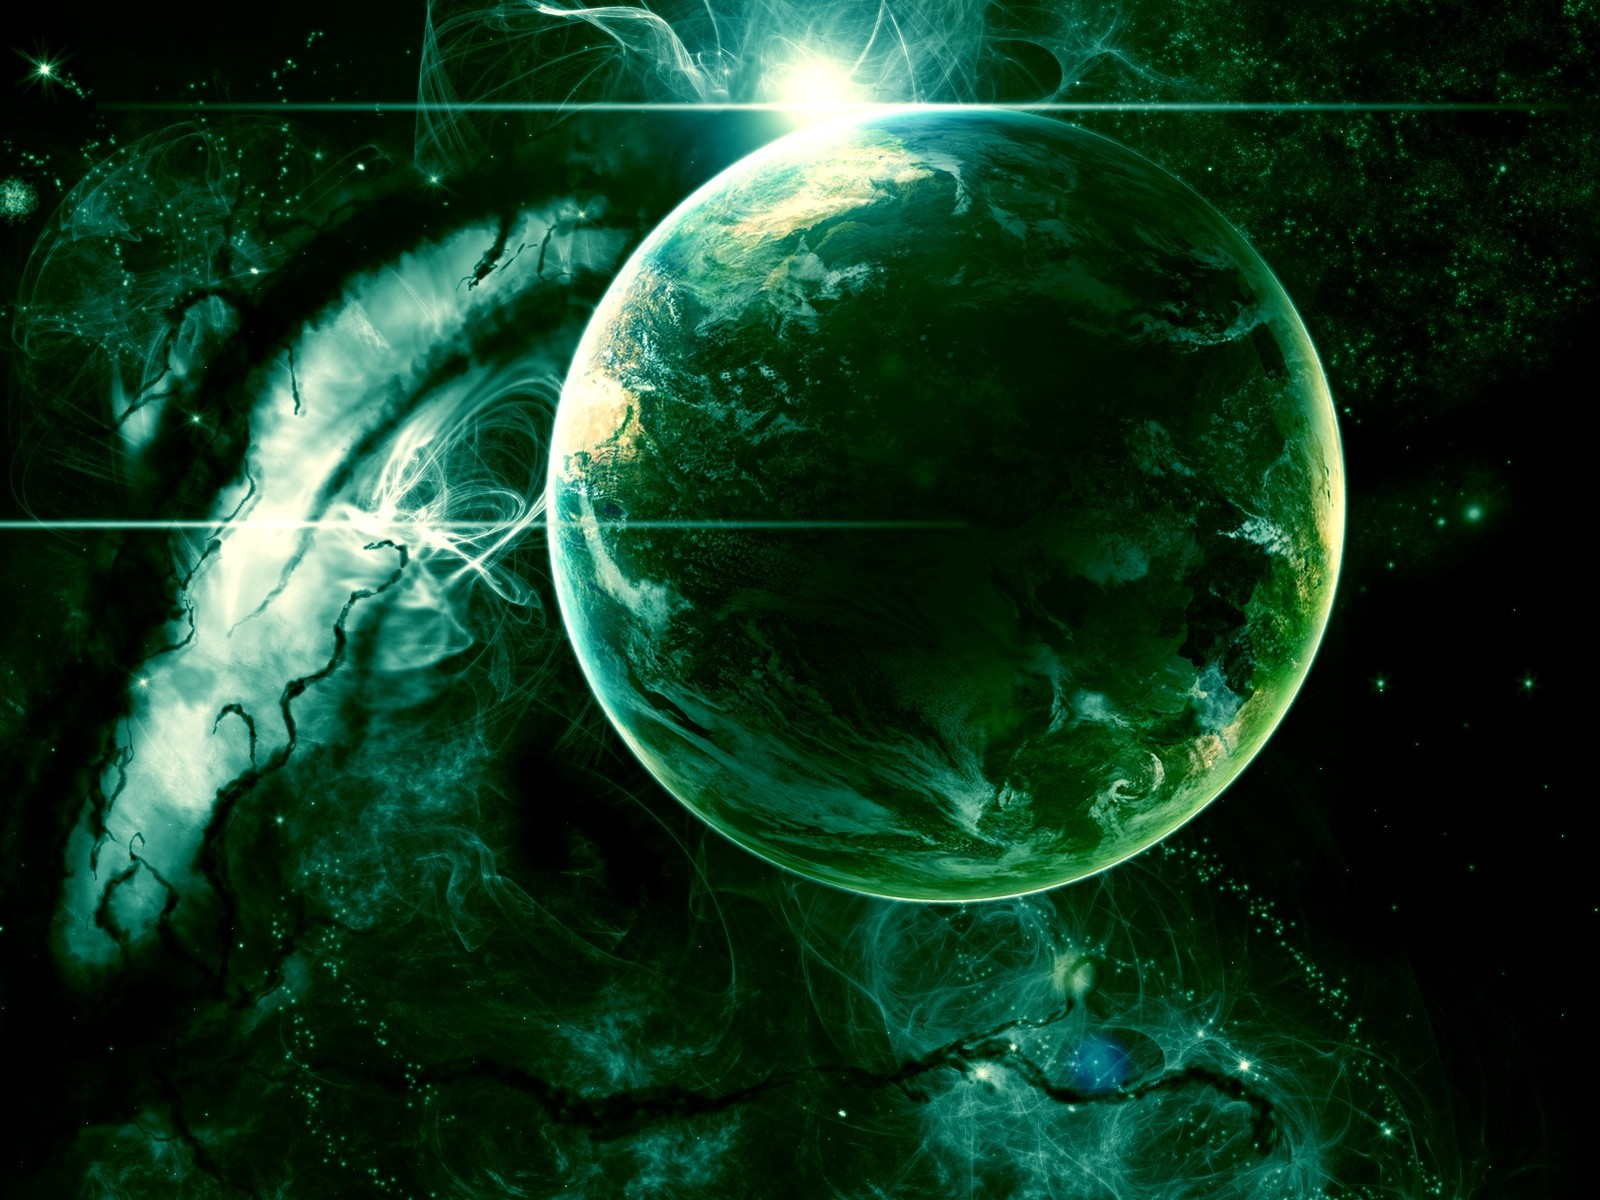 Space___Green_planet_in_space_071518_.jpg